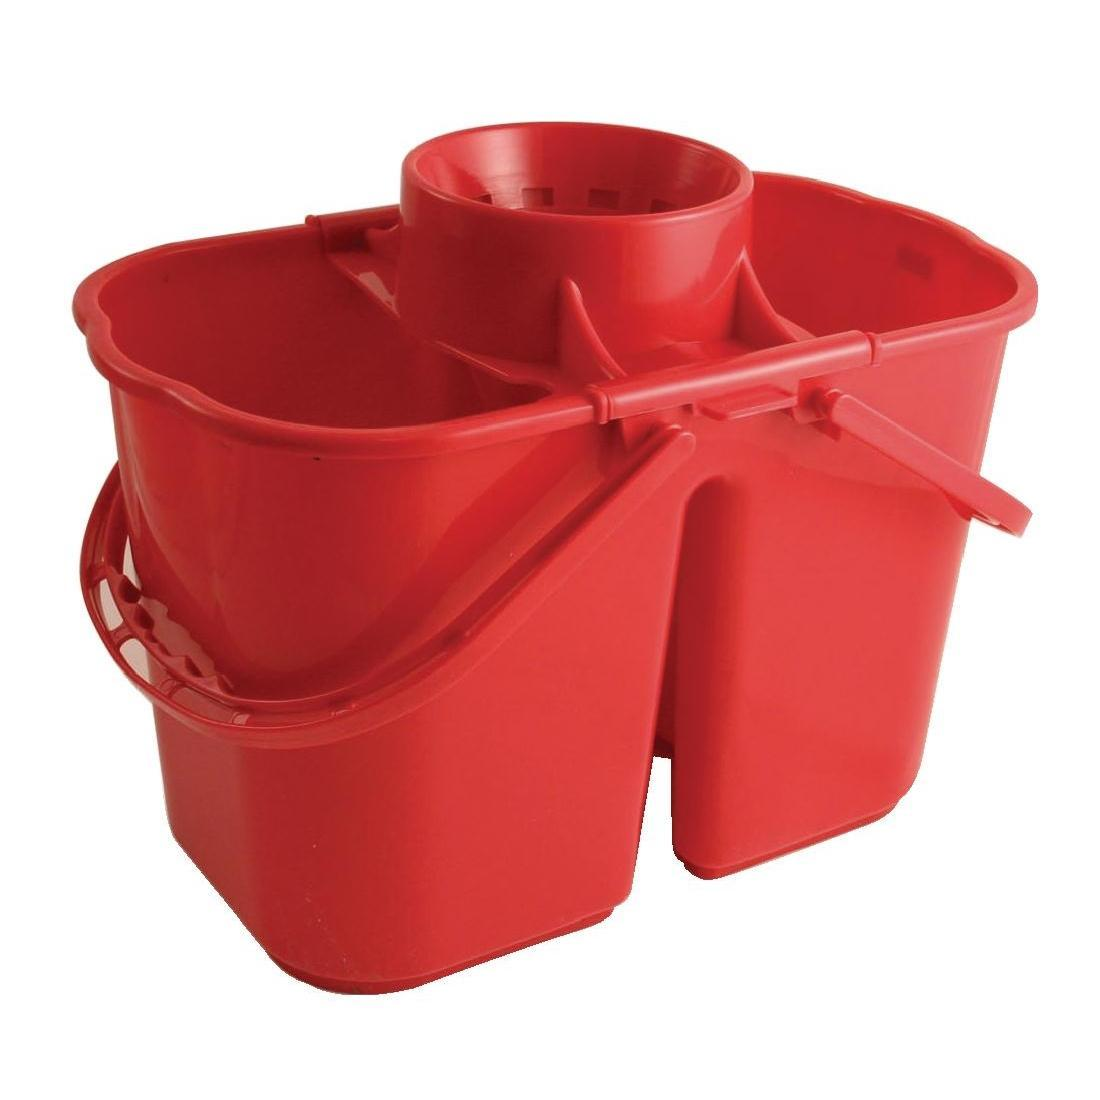 Jantex Colour Coded Twin Mop Buckets Red